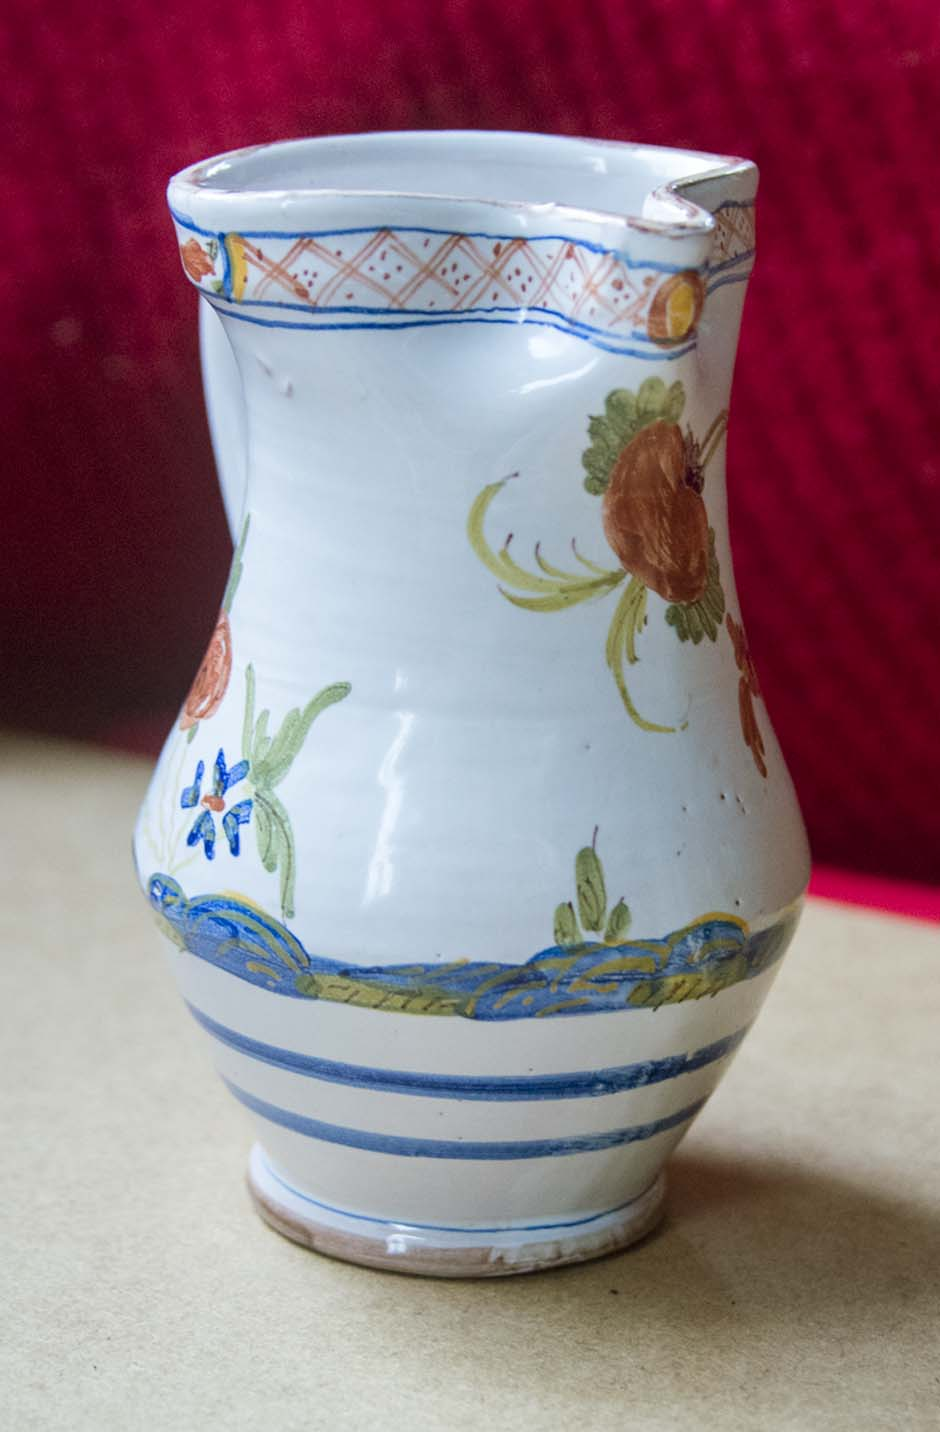 Nice hand-painted jug with no clues - does anyone recognise? Flower14